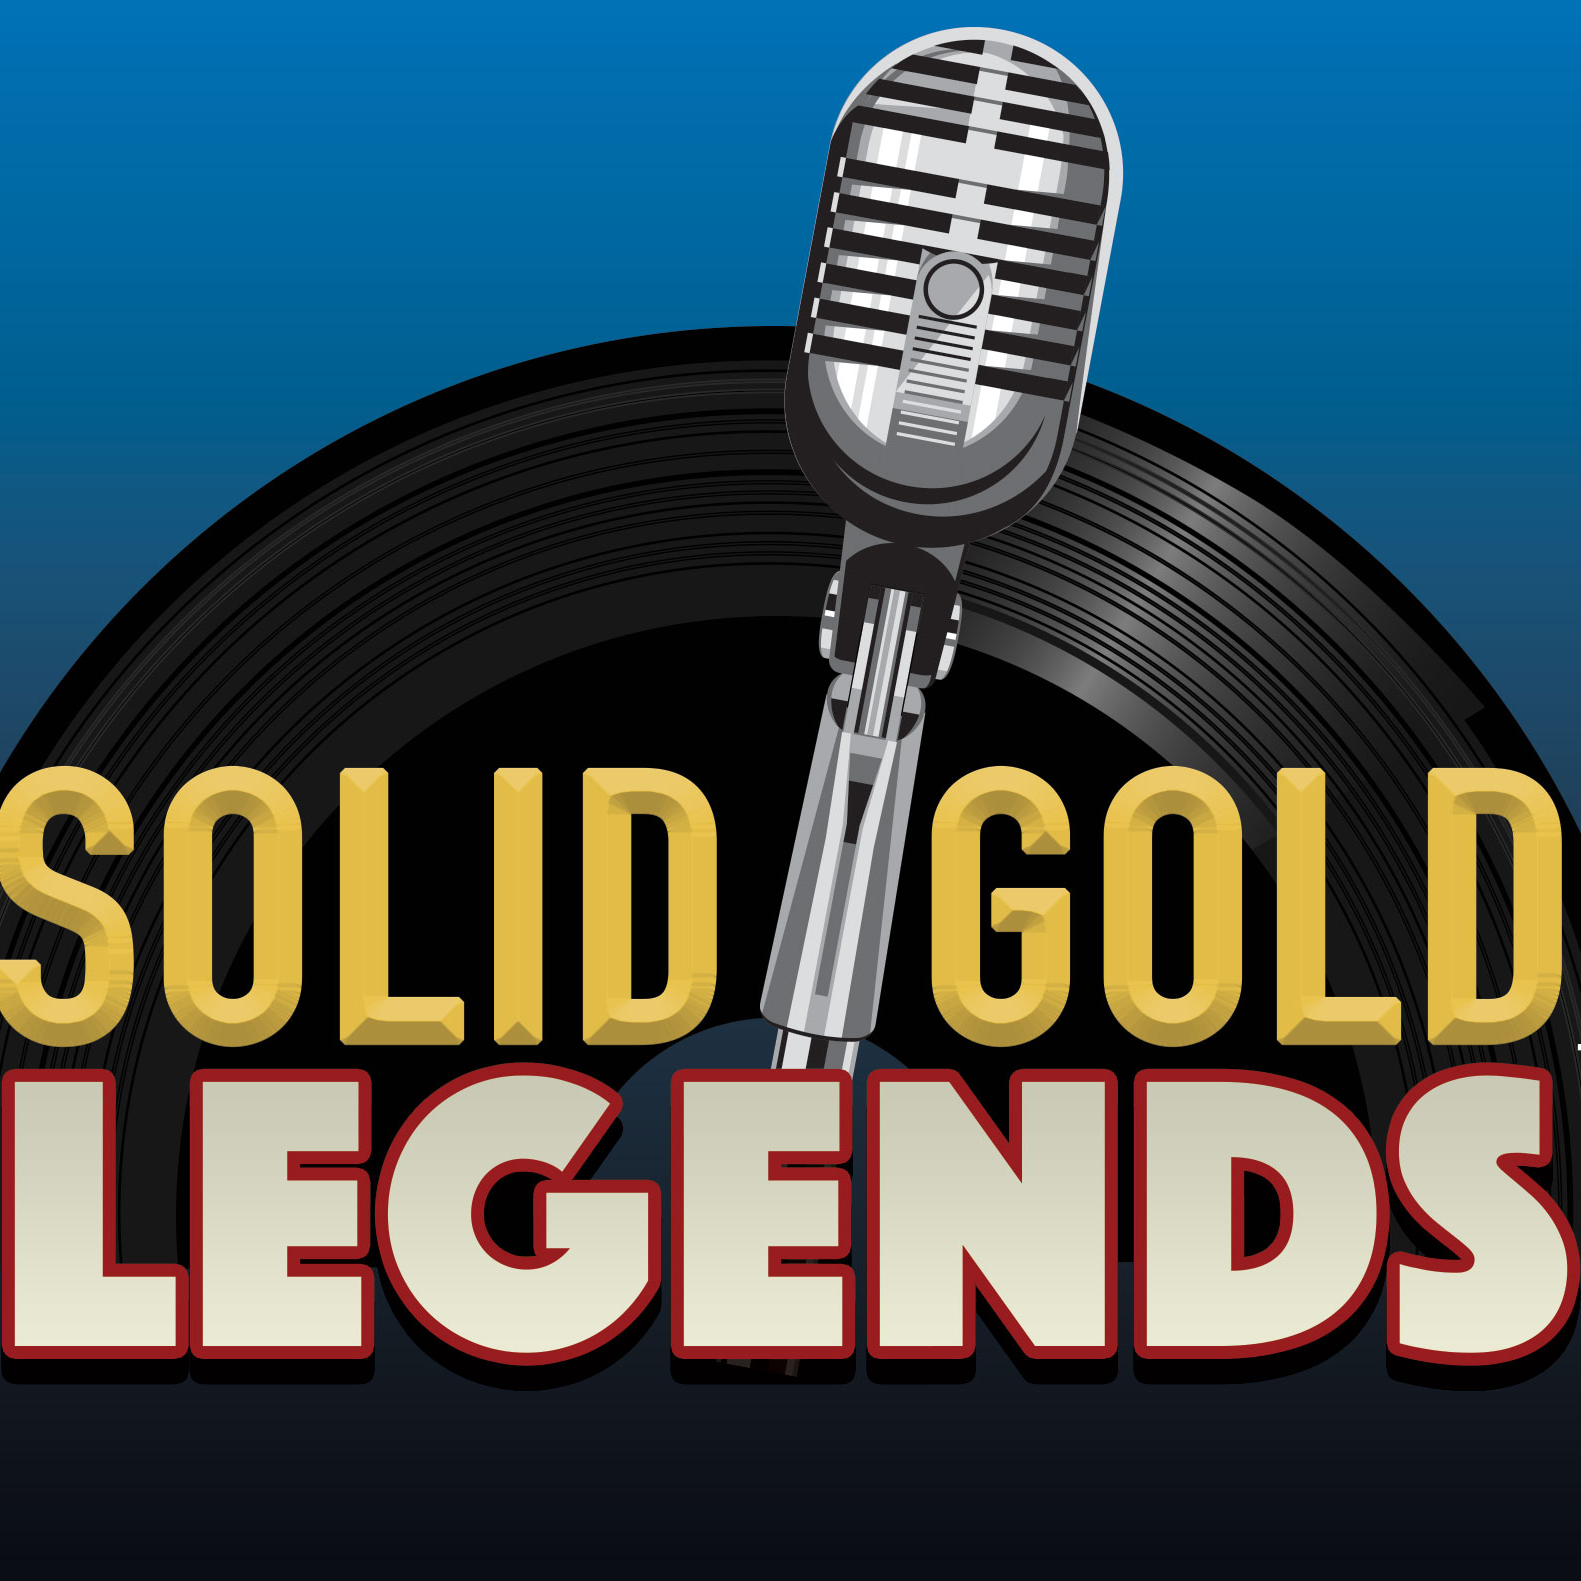 Solid Gold Legends